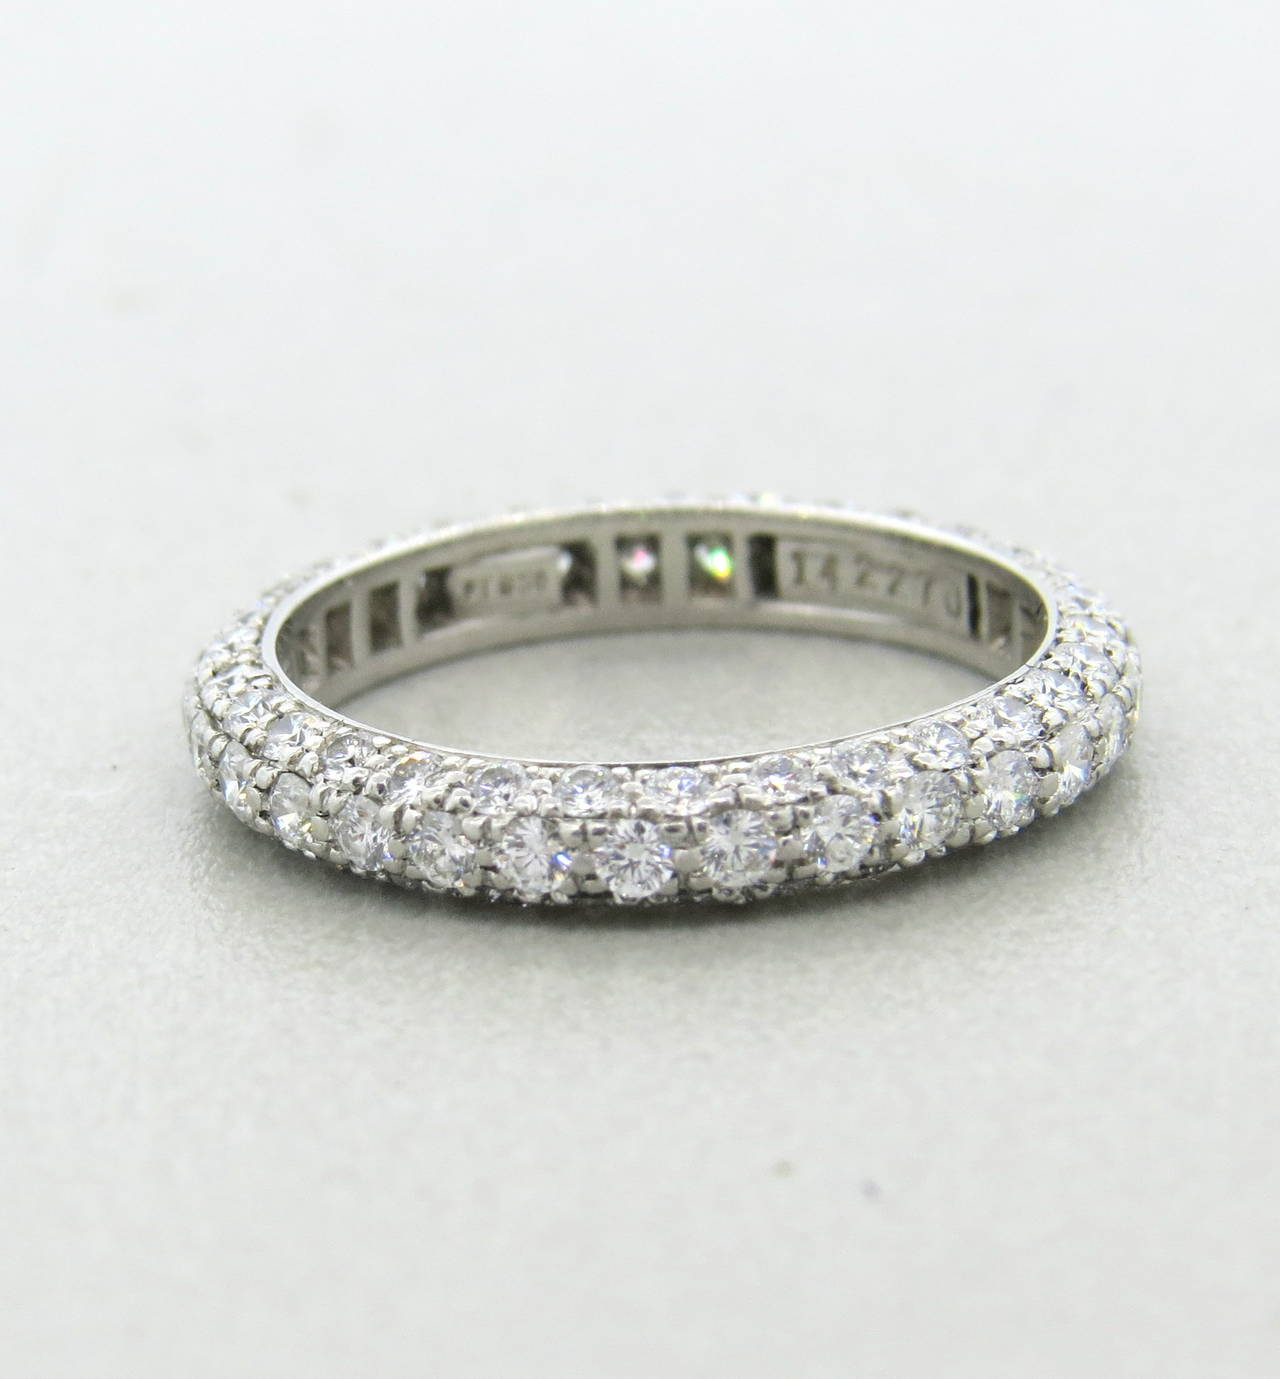 Harry Winston Diamond Platinum Wedding Band Ring At 1stdibs